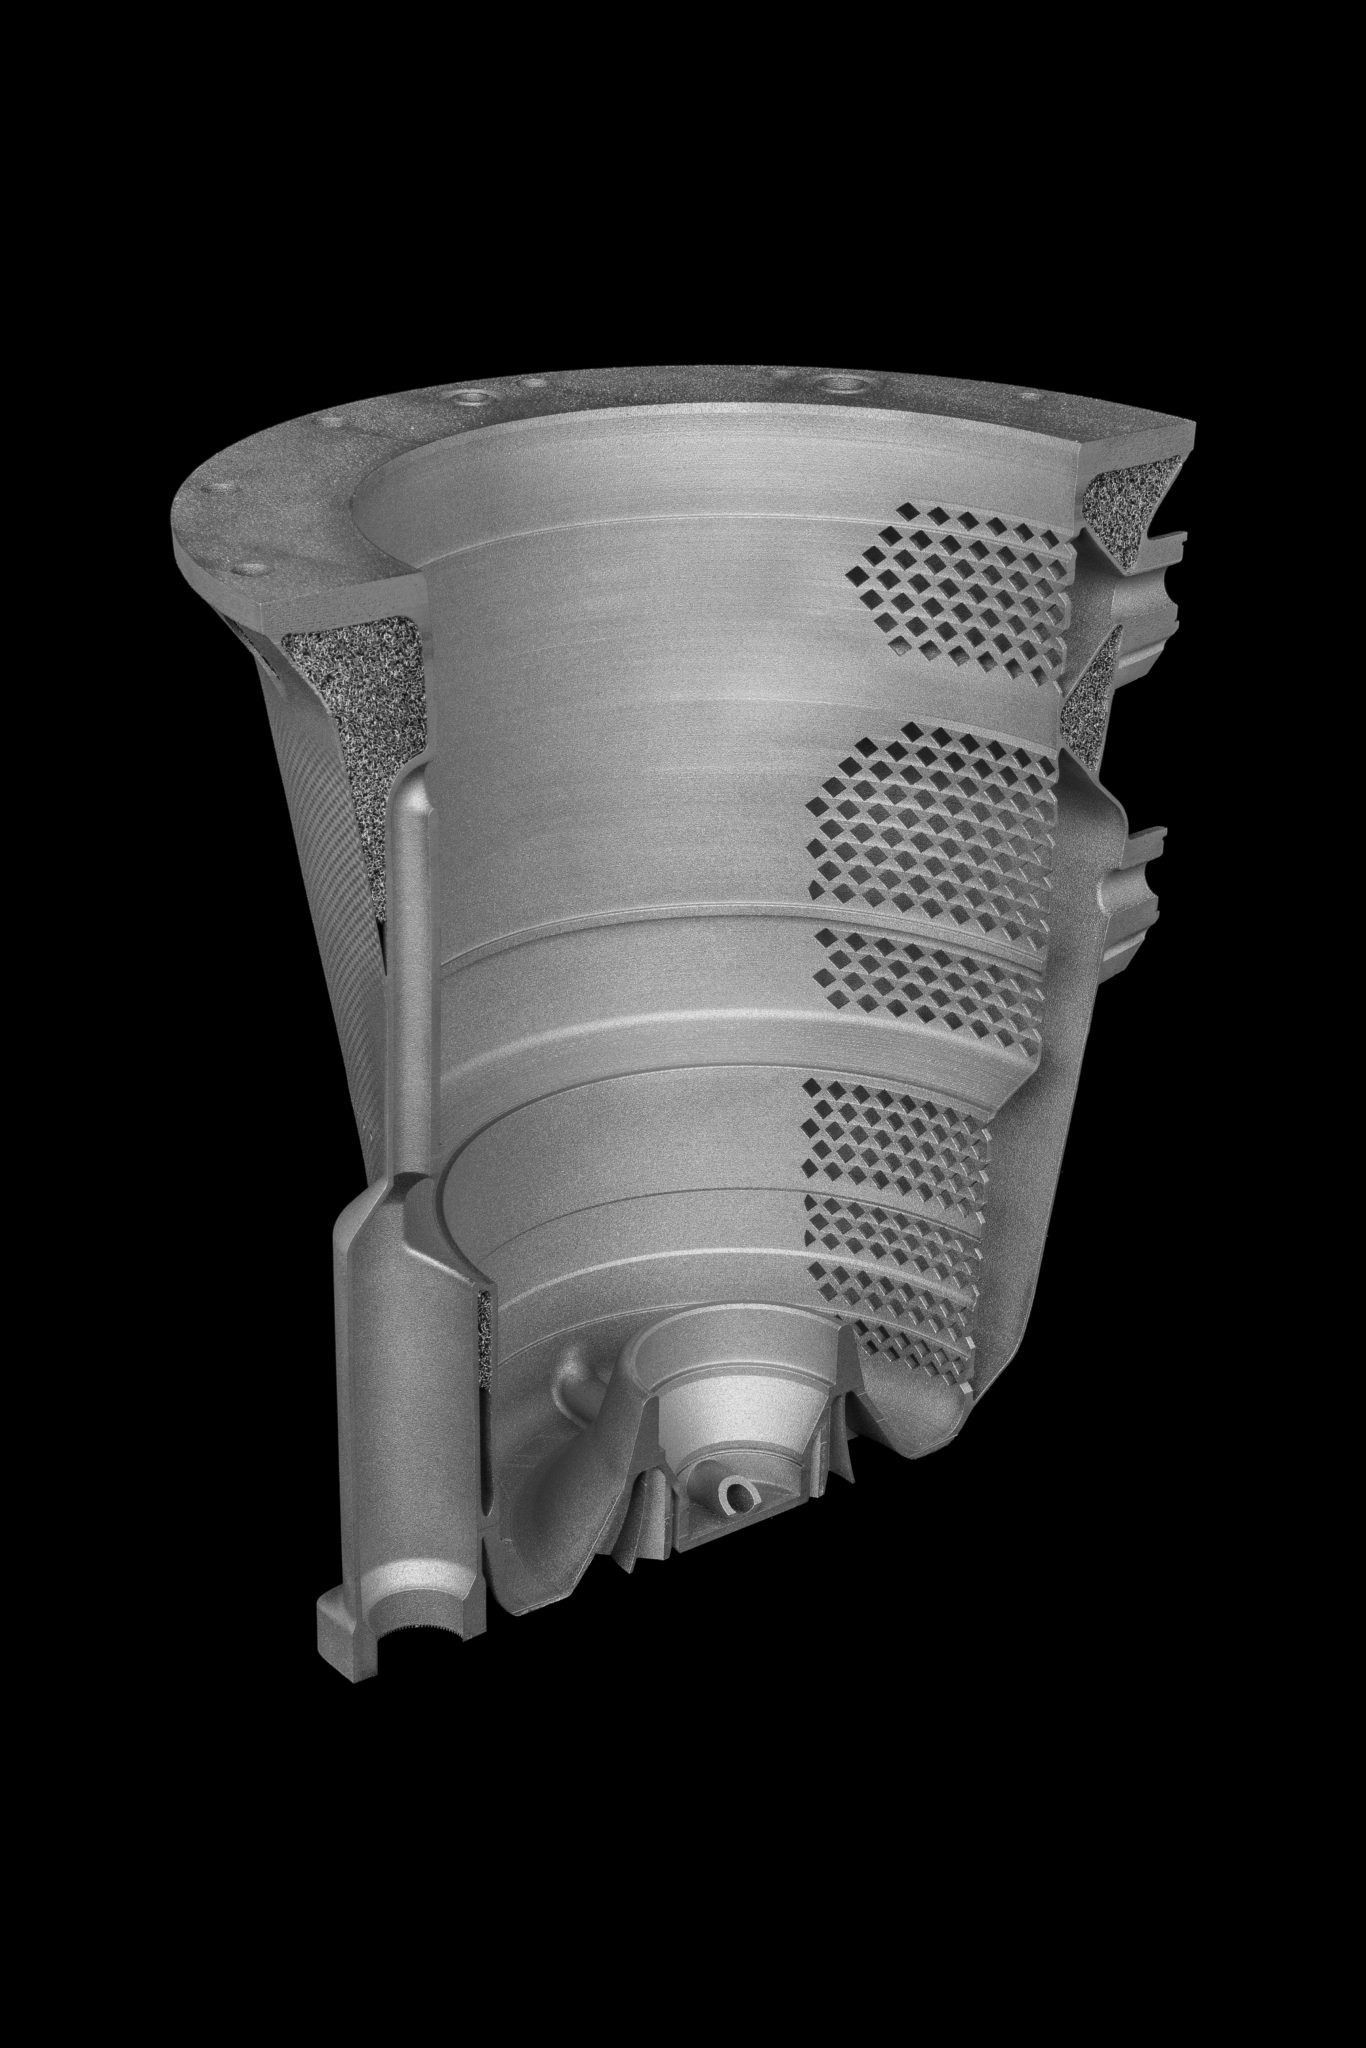 The redesigned electrical generator housing which includes integrated lattice structures. Clip via Betatype.